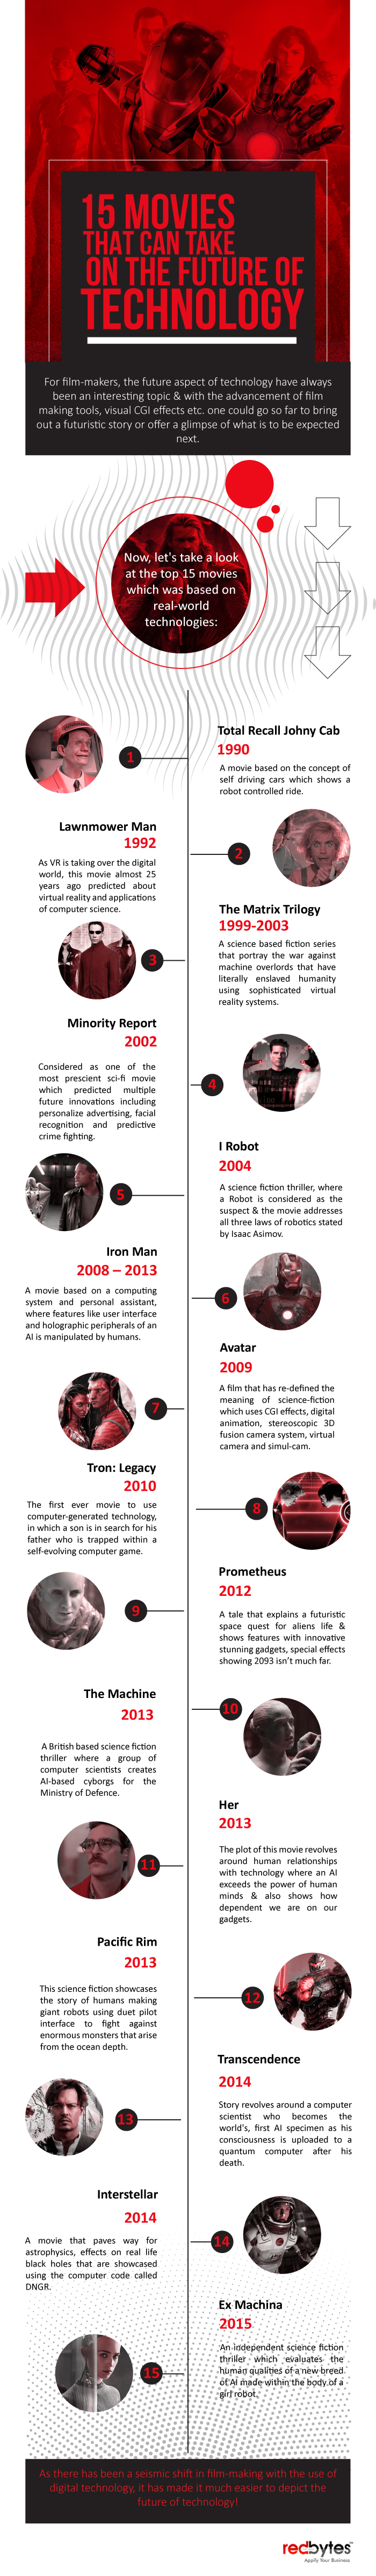 Future Vision: 15 Movies that Predicted Futuristic Technological Possibilities - Infographic